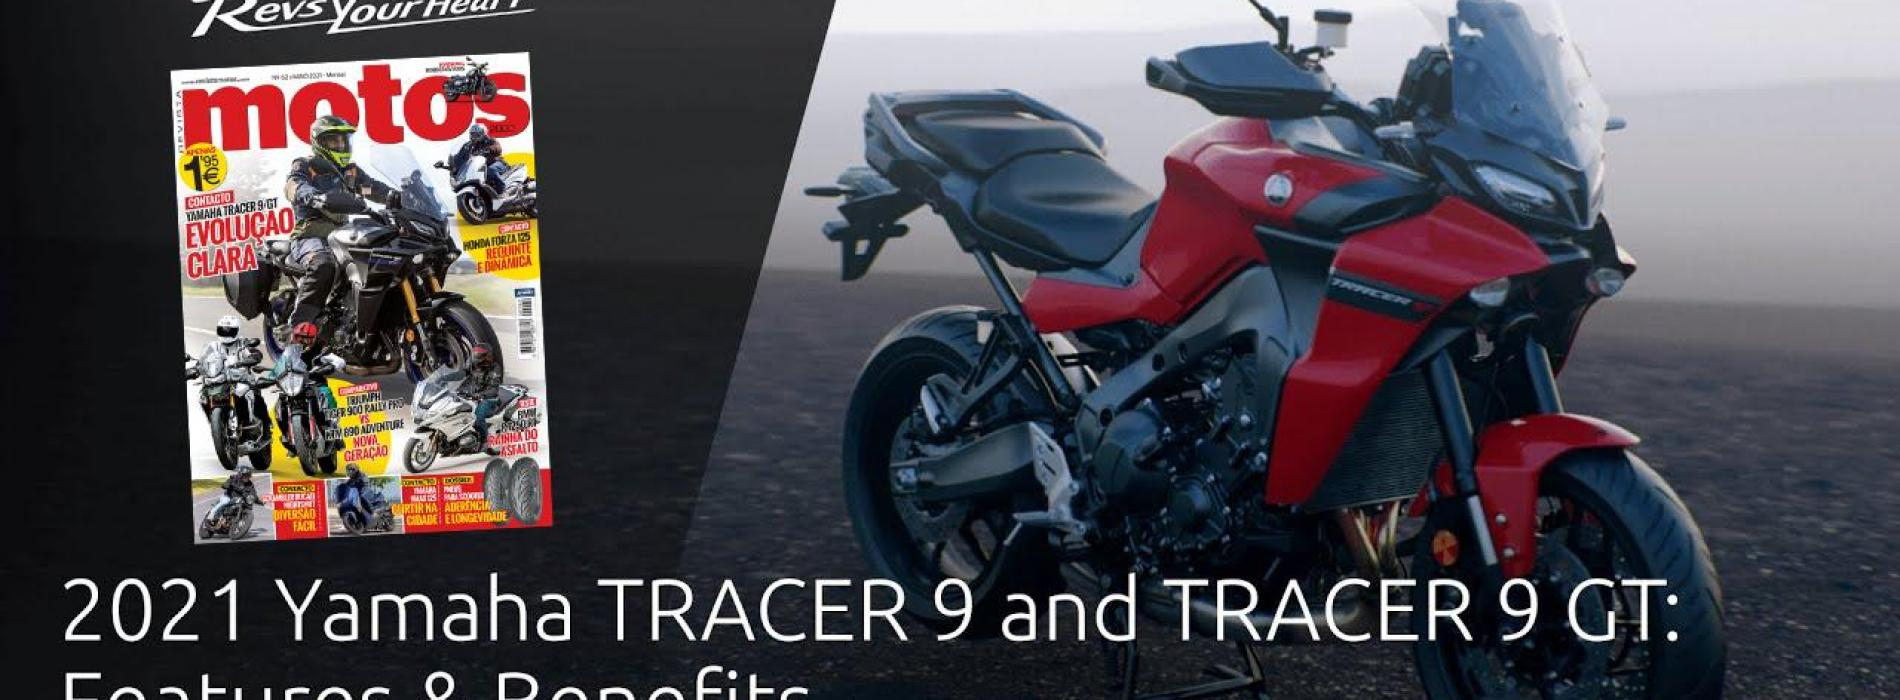 Yamaha TRACER 9 e TRACER 9 GT – Caraterísticas (Video)